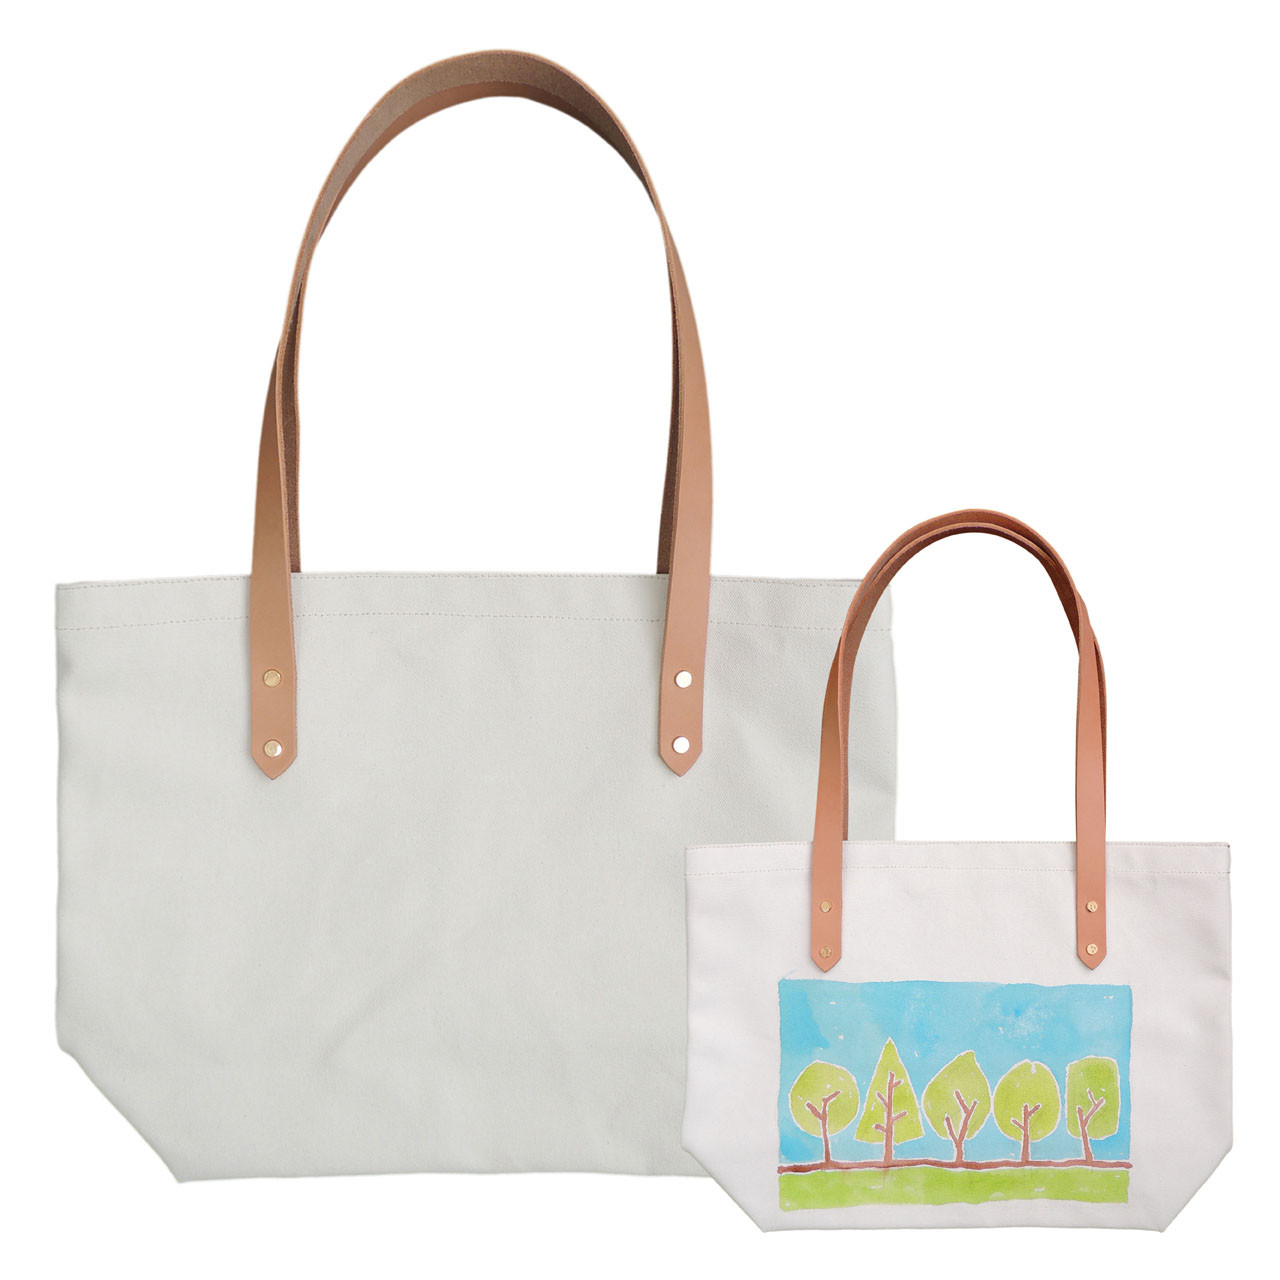 Paintable Canvas Tote with Leather Straps | Spicer Bags